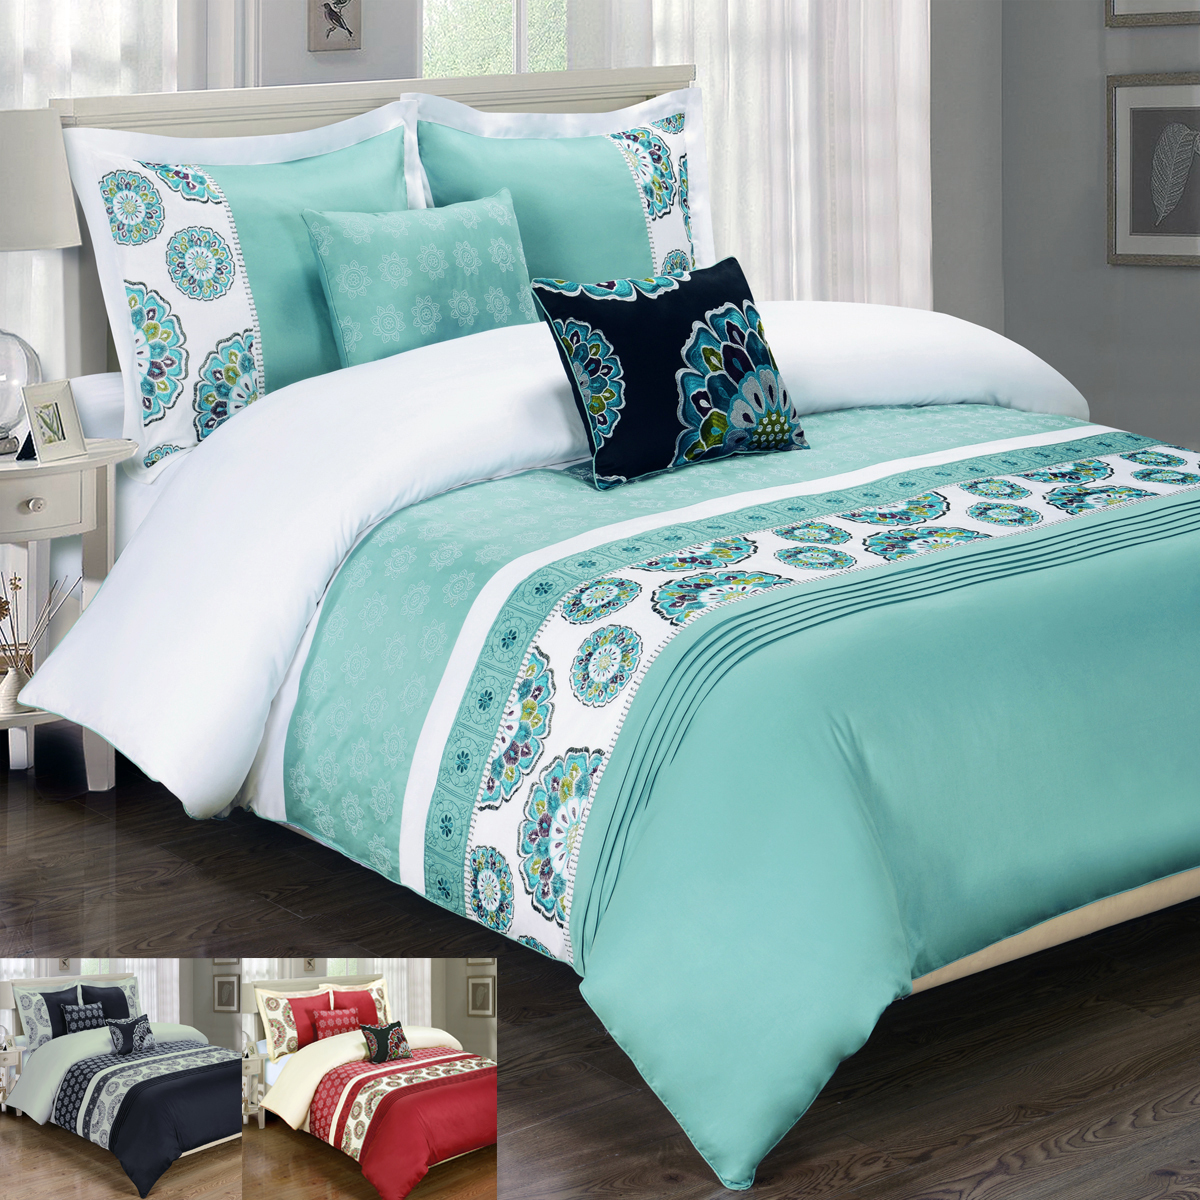 Royal Tradition. Duvet material :100% Cotton; Style: Embroidered; Thread count: 300; Duvet cover has 4 inner ties; Duvet cover has self piping 4 sides; Hidden zipper closure by footer. Care Instructions: Machine washable in cold water.